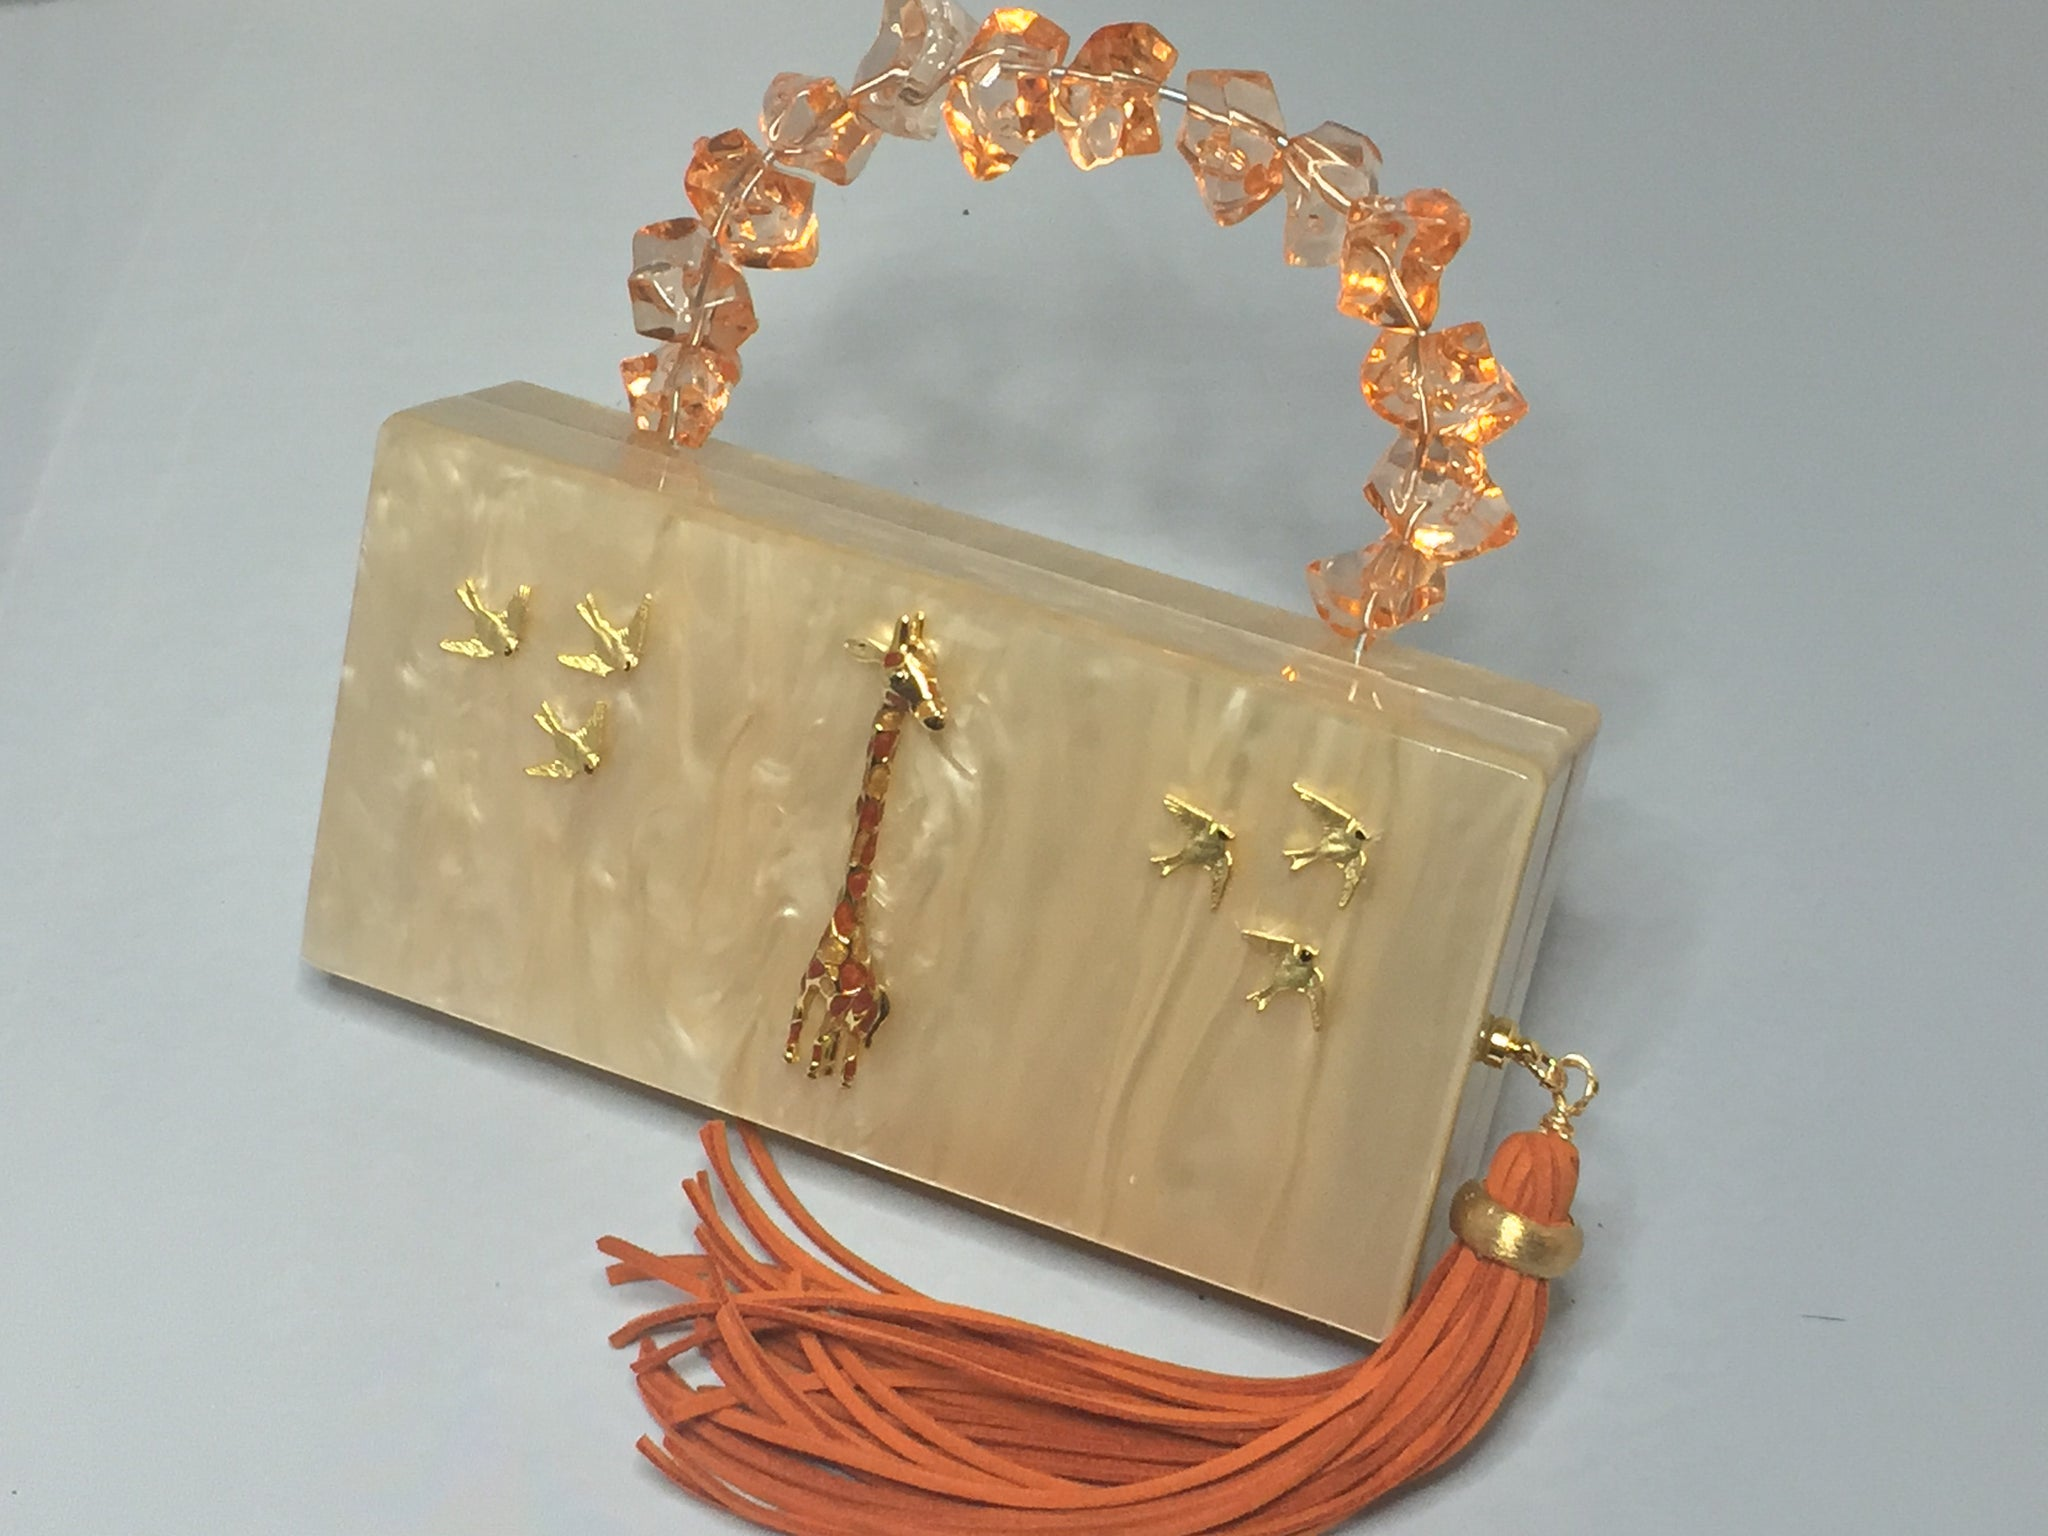 "Vintage Style Creamy Peach Lucite Rectangular Clutch With Hideaway Cross-Body Chain, Long Peachy Suede Tassel Adorned With Golden Giraffe And Golden Birds Dimensions - Height 5""; Width 7.5""; Depth 1.75"""